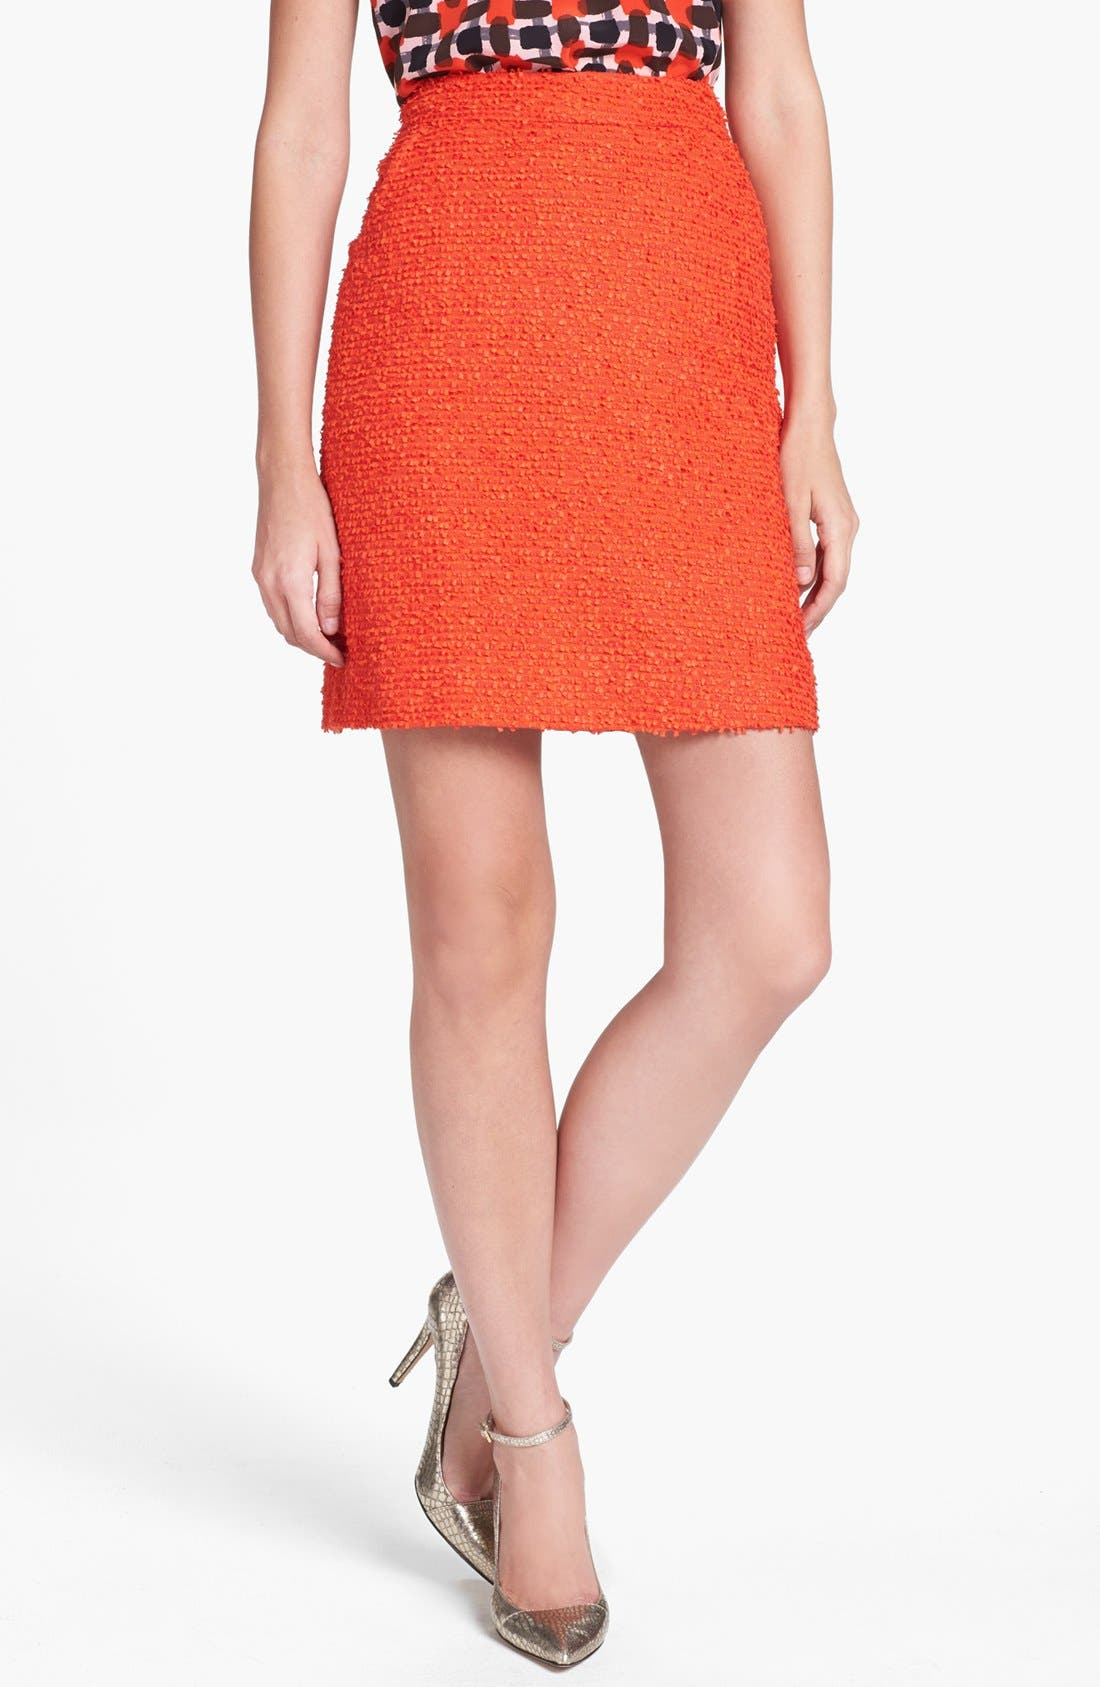 Alternate Image 1 Selected - kate spade new york 'coretta' skirt